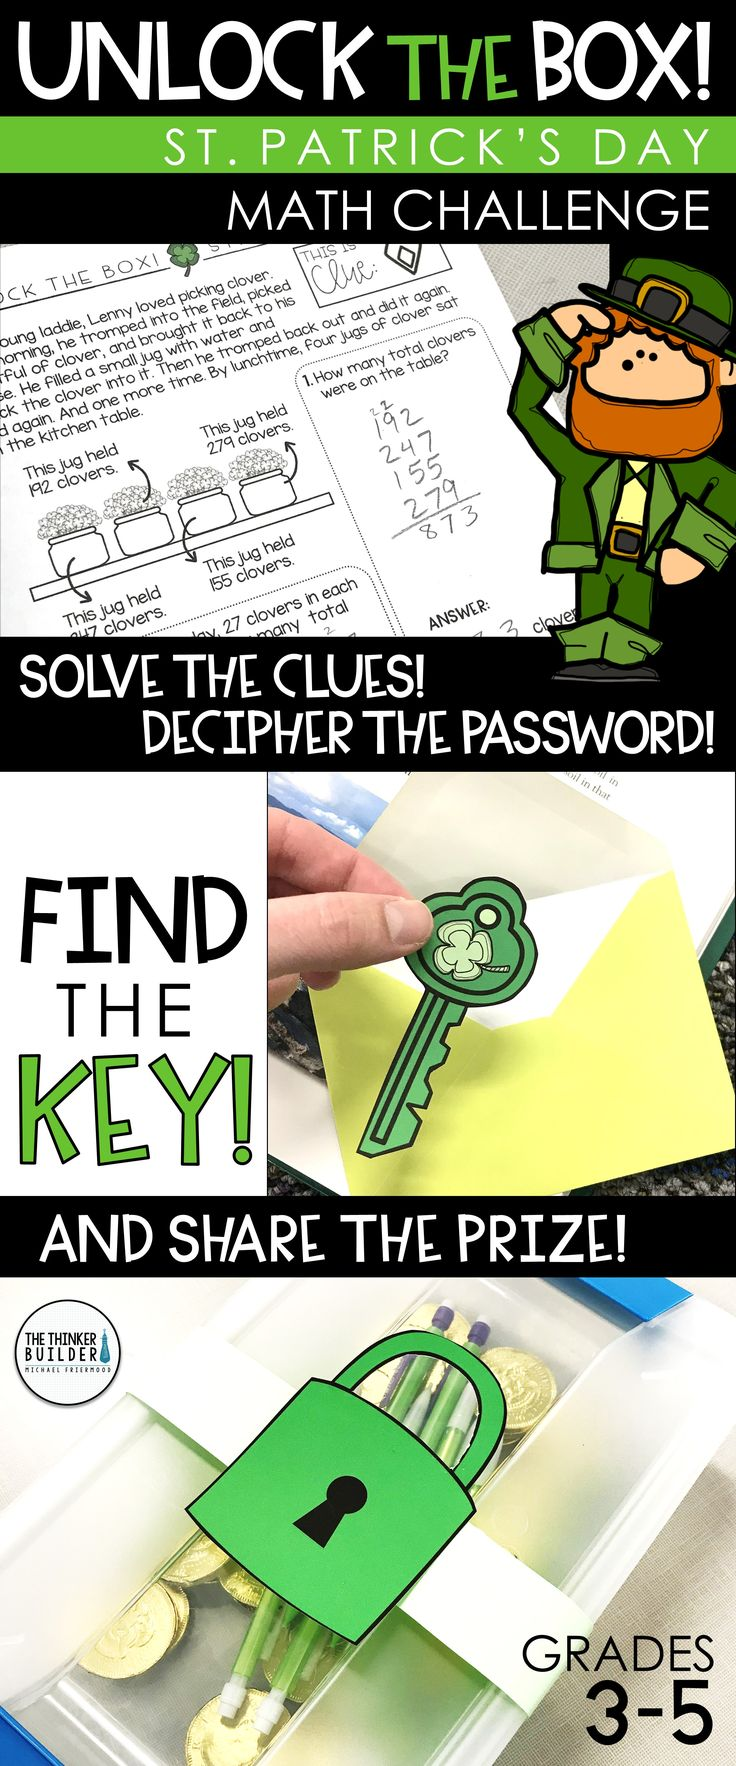 Unlock the Box! is an engaging math challenge for St. Patrick's Day, focusing on addition and subtraction with regrouping. Leprechaun Lenny has locked a prize inside a box, and students must solve his clues and find the key to unlock the box and earn the prize! Grades 4-5 ($)